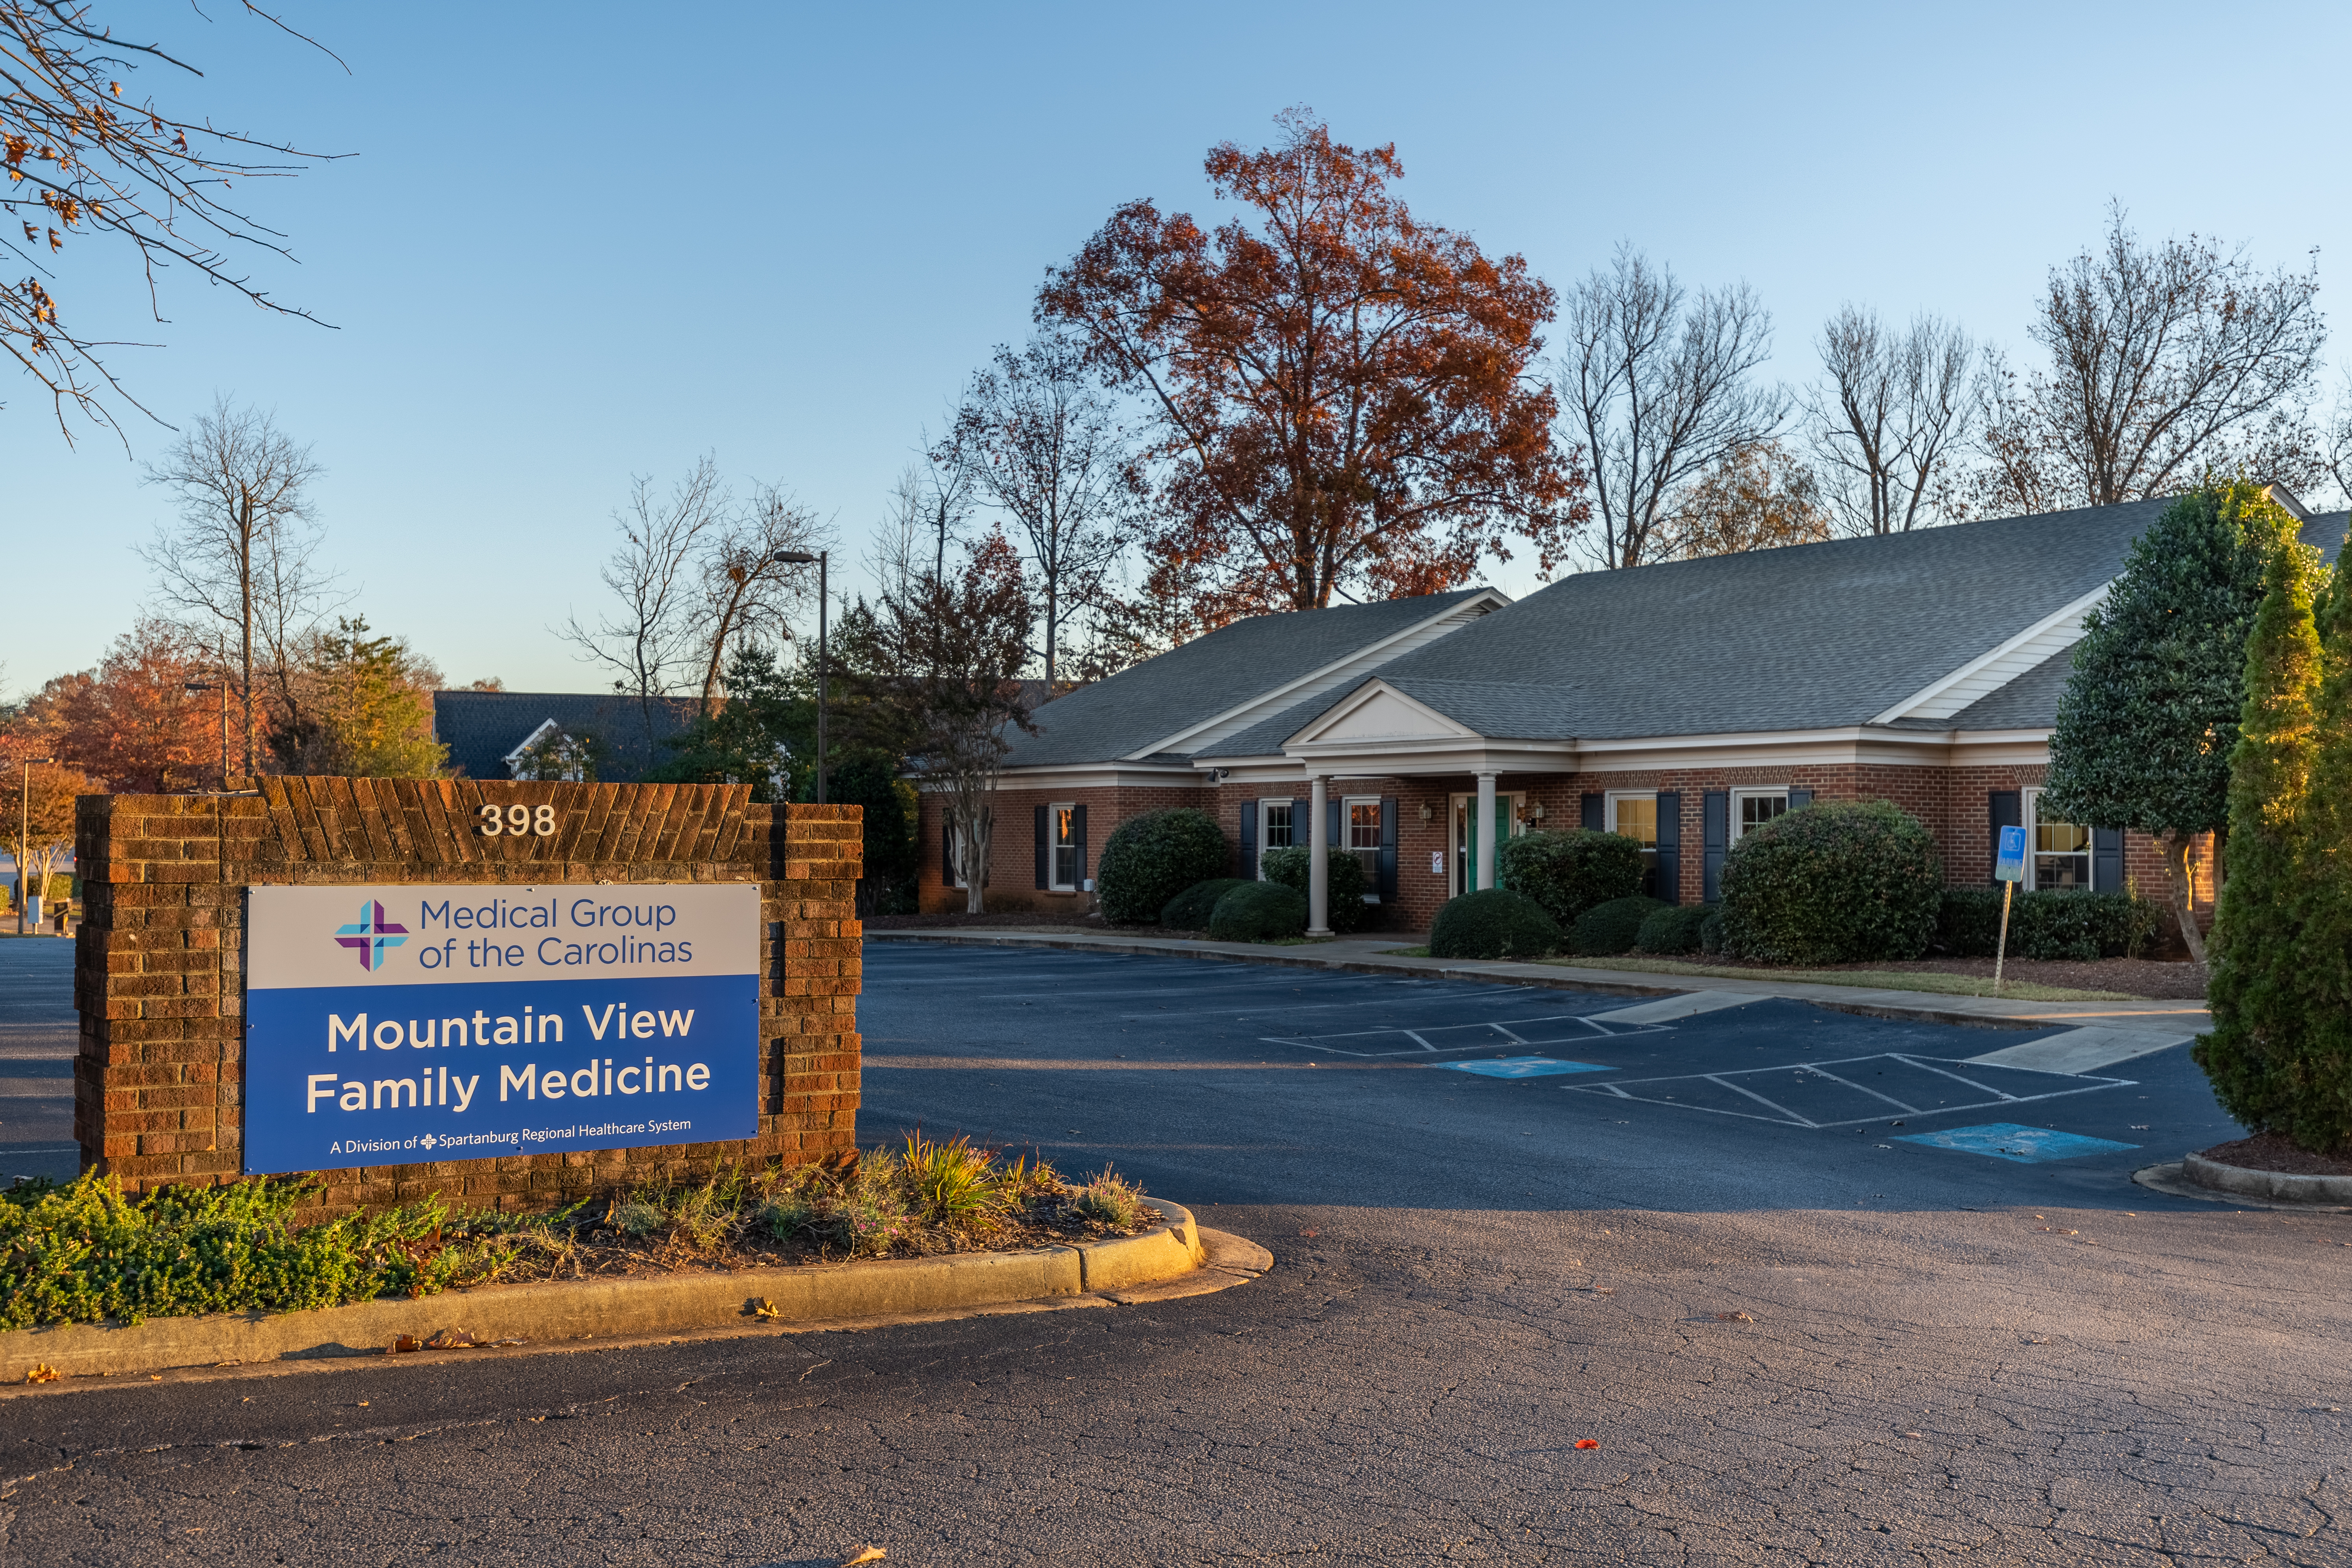 Medical Group of the Carolinas - Mountain View Family Medicine